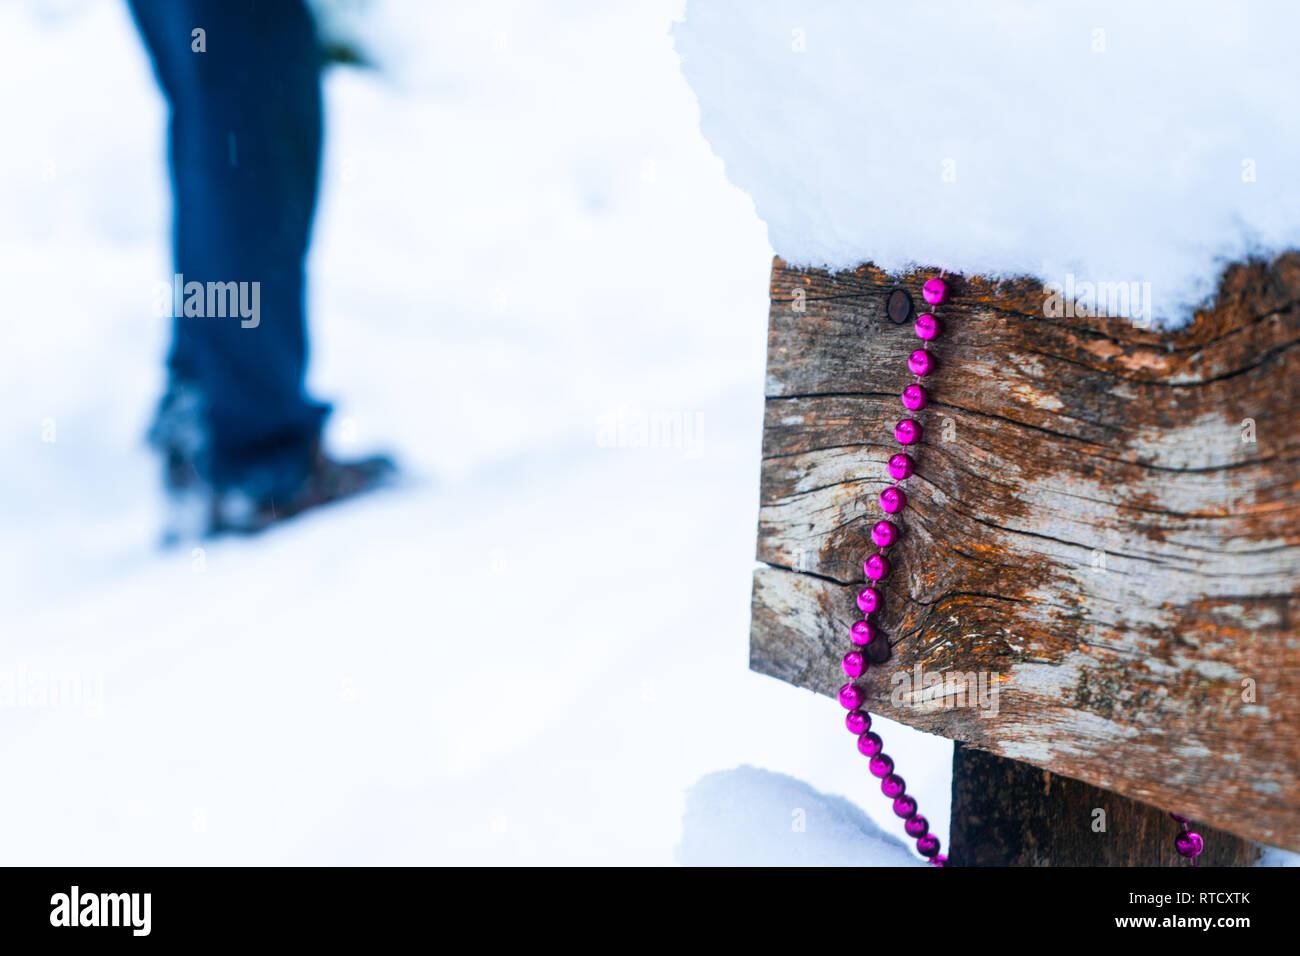 Person's legs in snow and pink bead garland draped over a wooden bench in the forest, depicting Christmas decor, winter time, festivities, and winter. Stock Photo